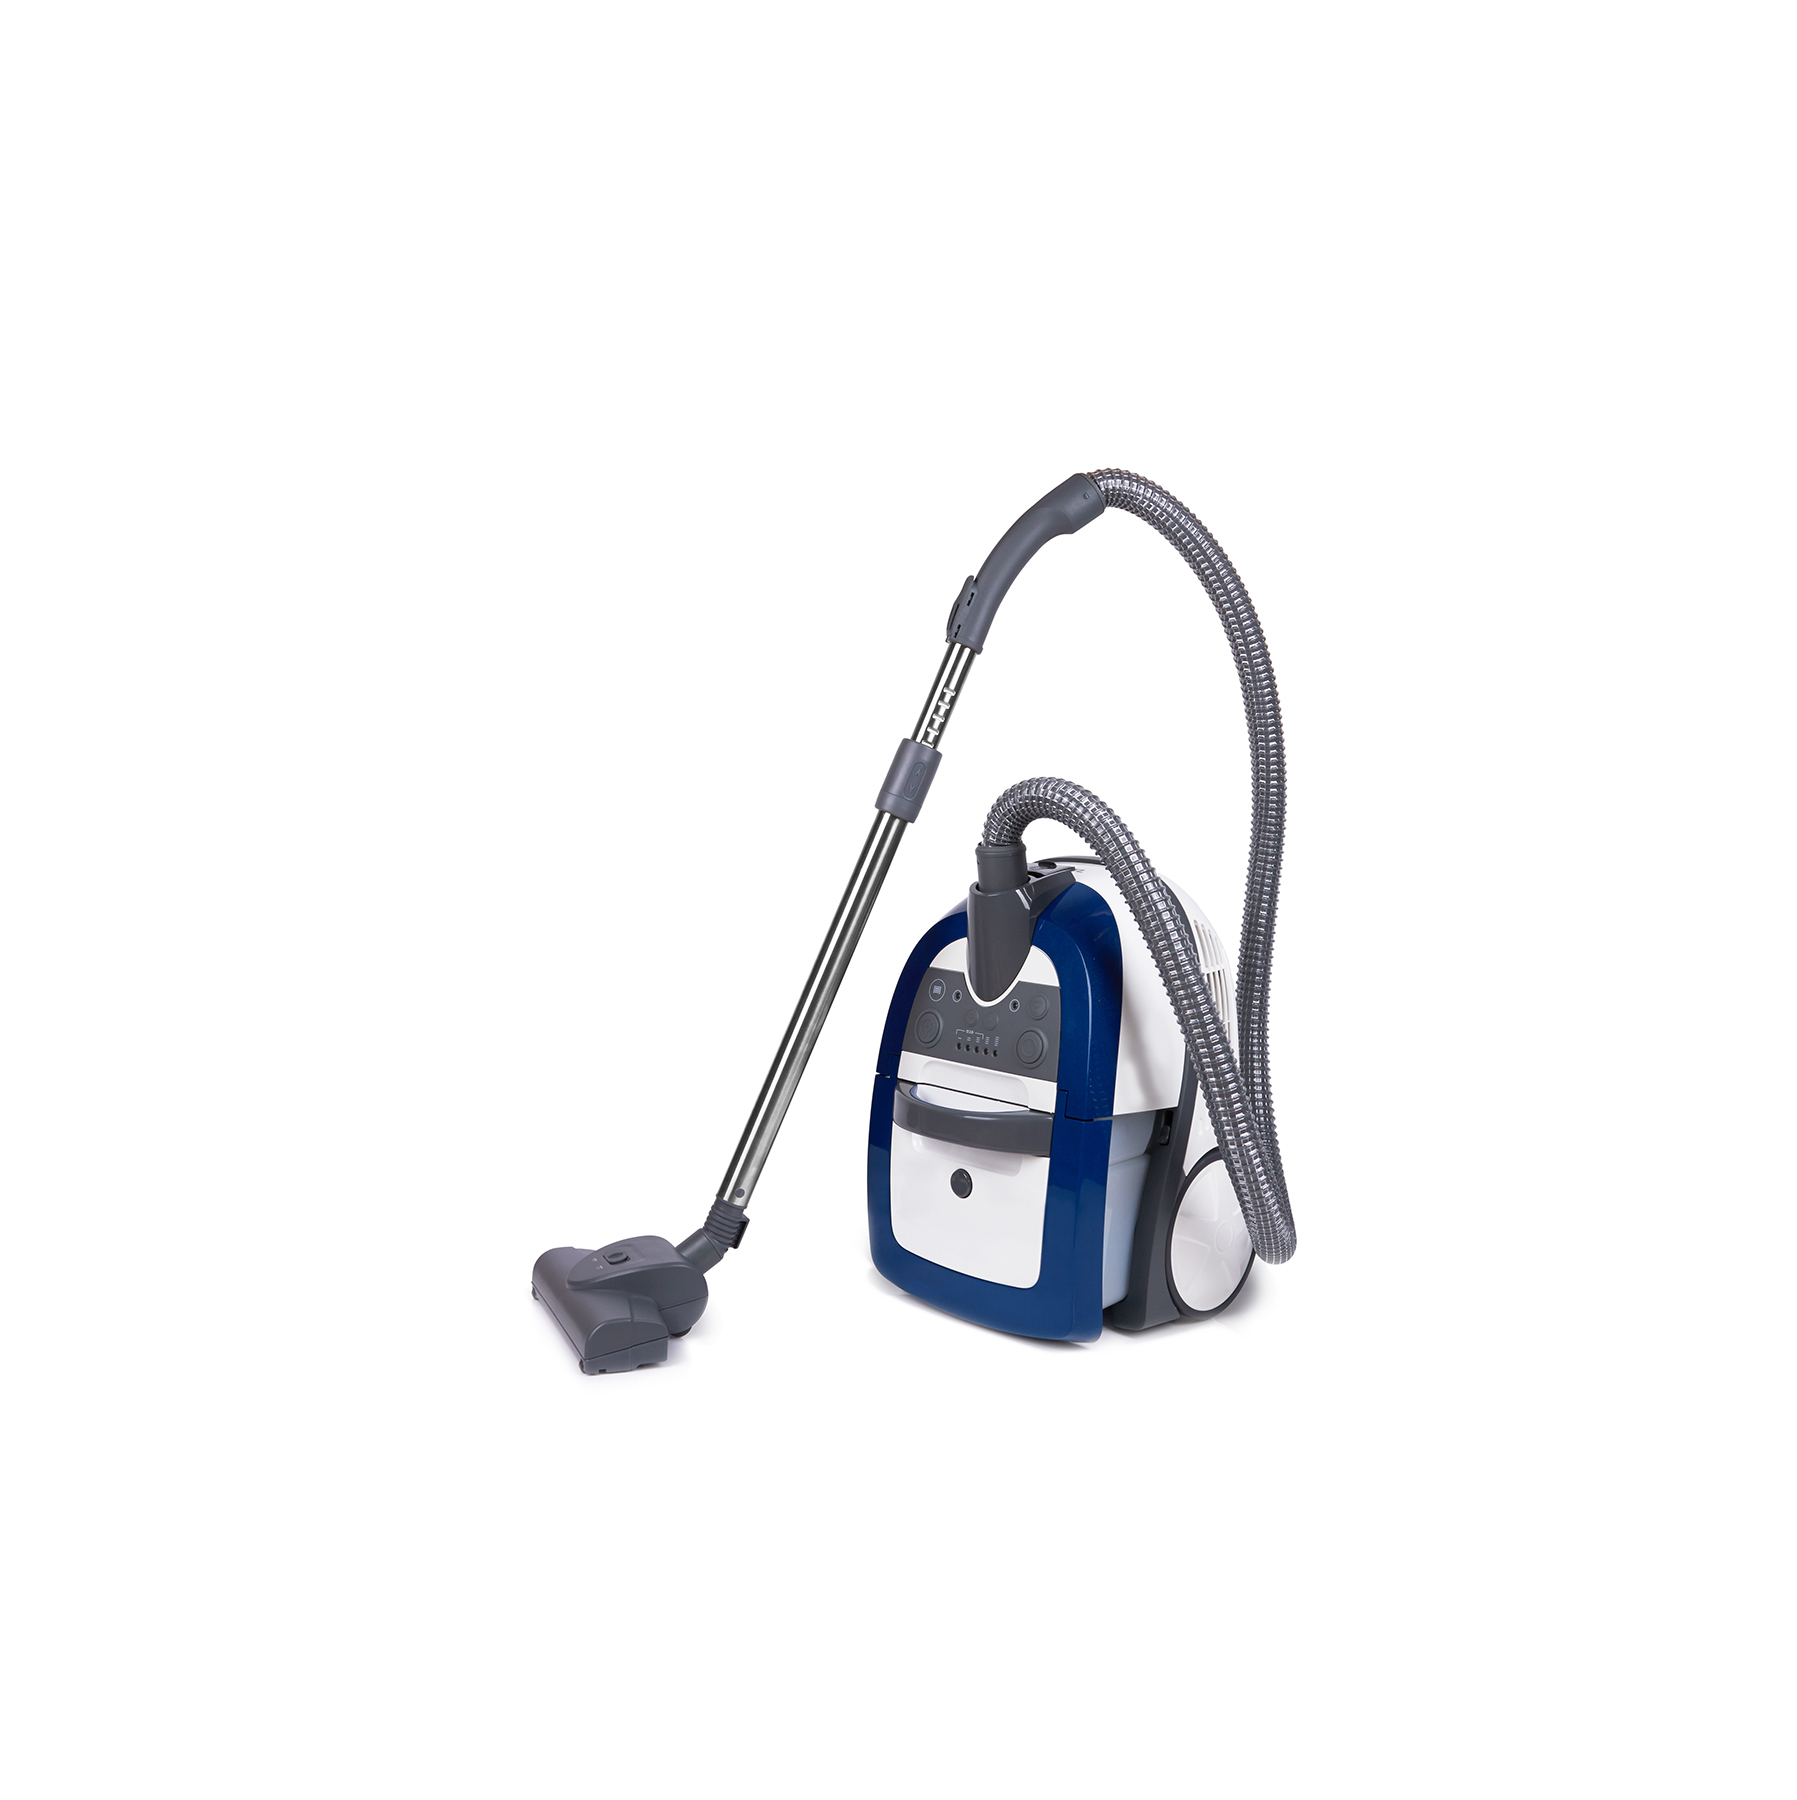 Navy Blue Vacuum Cleaner